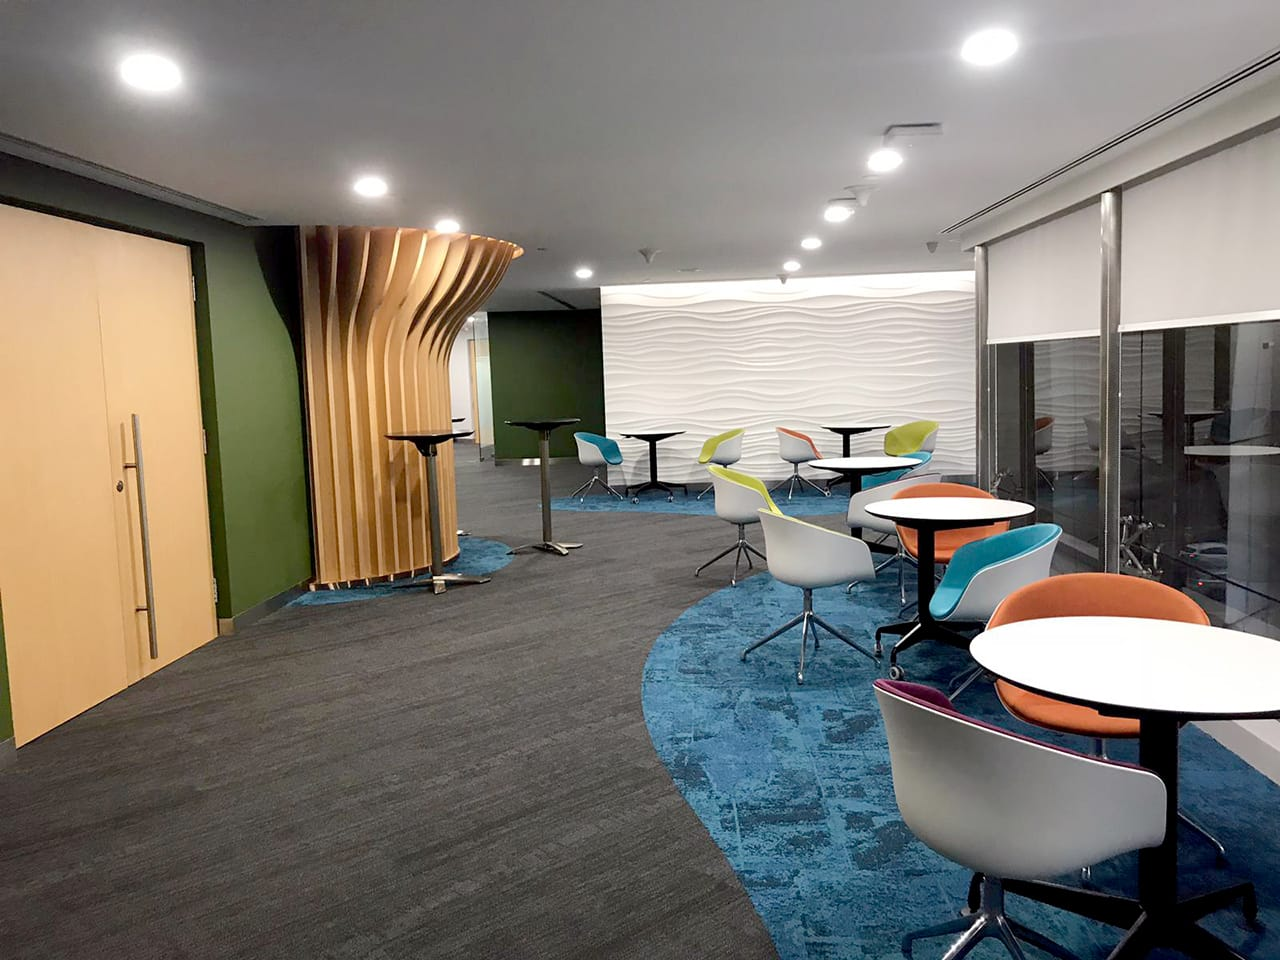 Ministry of Environment & Water Resources - Scotts Road | Product Seen: [Customised Laminated Tabletop With Natural Plywood Edging + Togoshi Height Adjustable Table Base, Alton Folding High Table – Round 600 (Nestable) & Blot 4Prong - Half Upholstery]